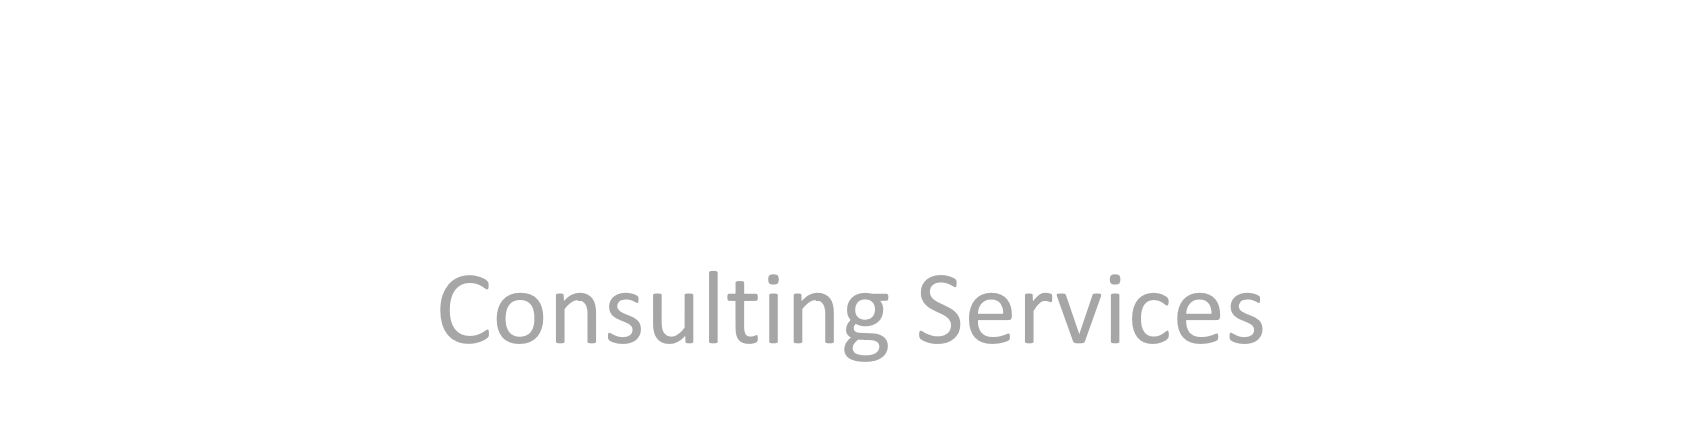 Magenta Consulting Services | HR Outsourcing | Executive Search